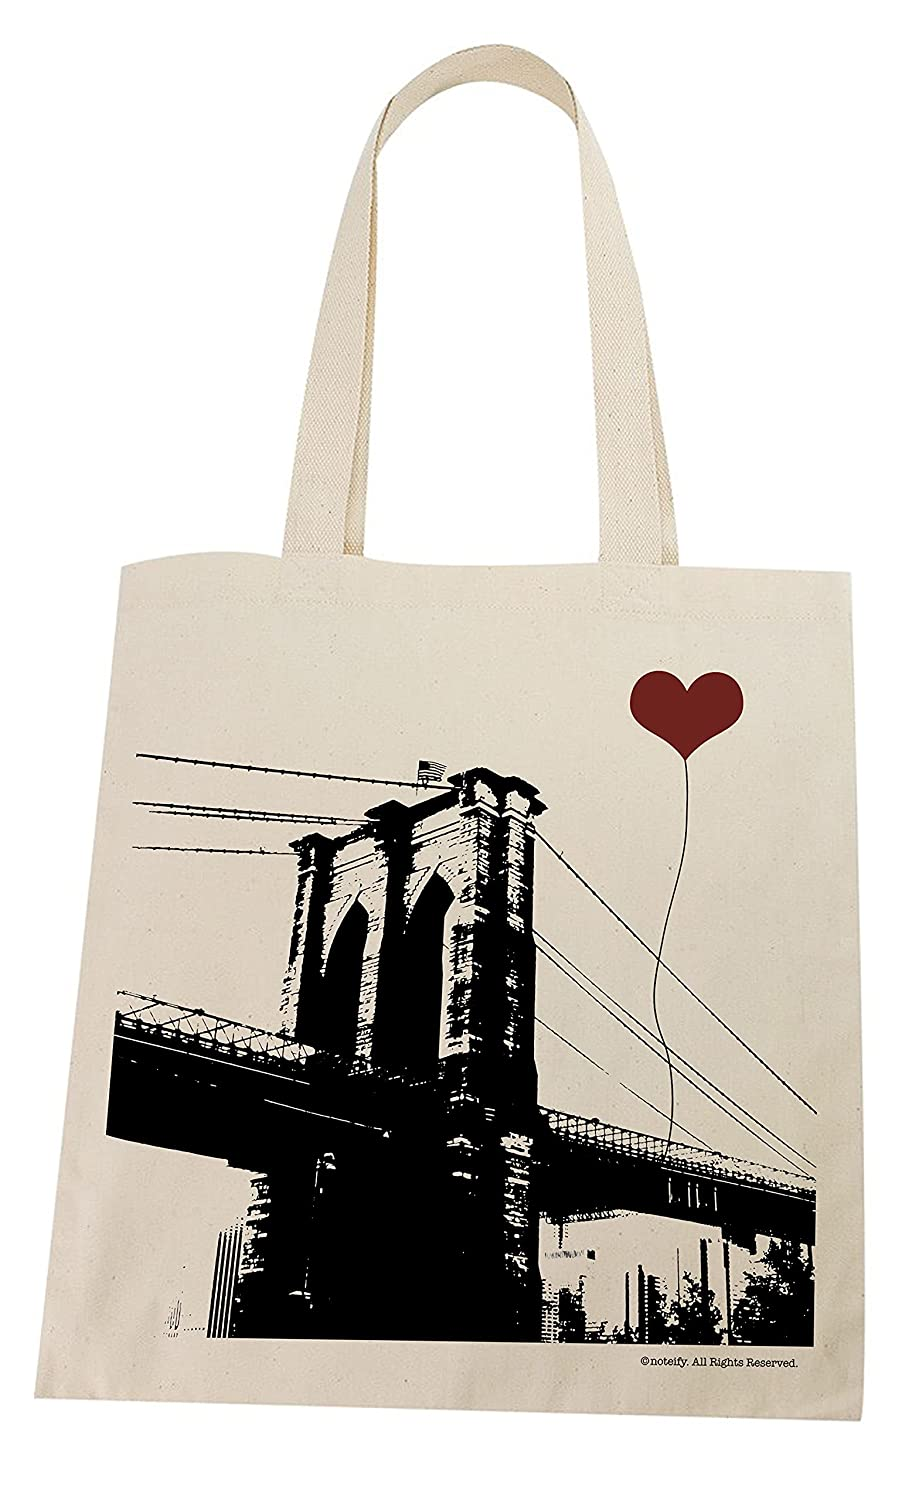 New York Brooklyn Bridge Lightweight Bag Tote Over item handling ☆ Special price for a limited time